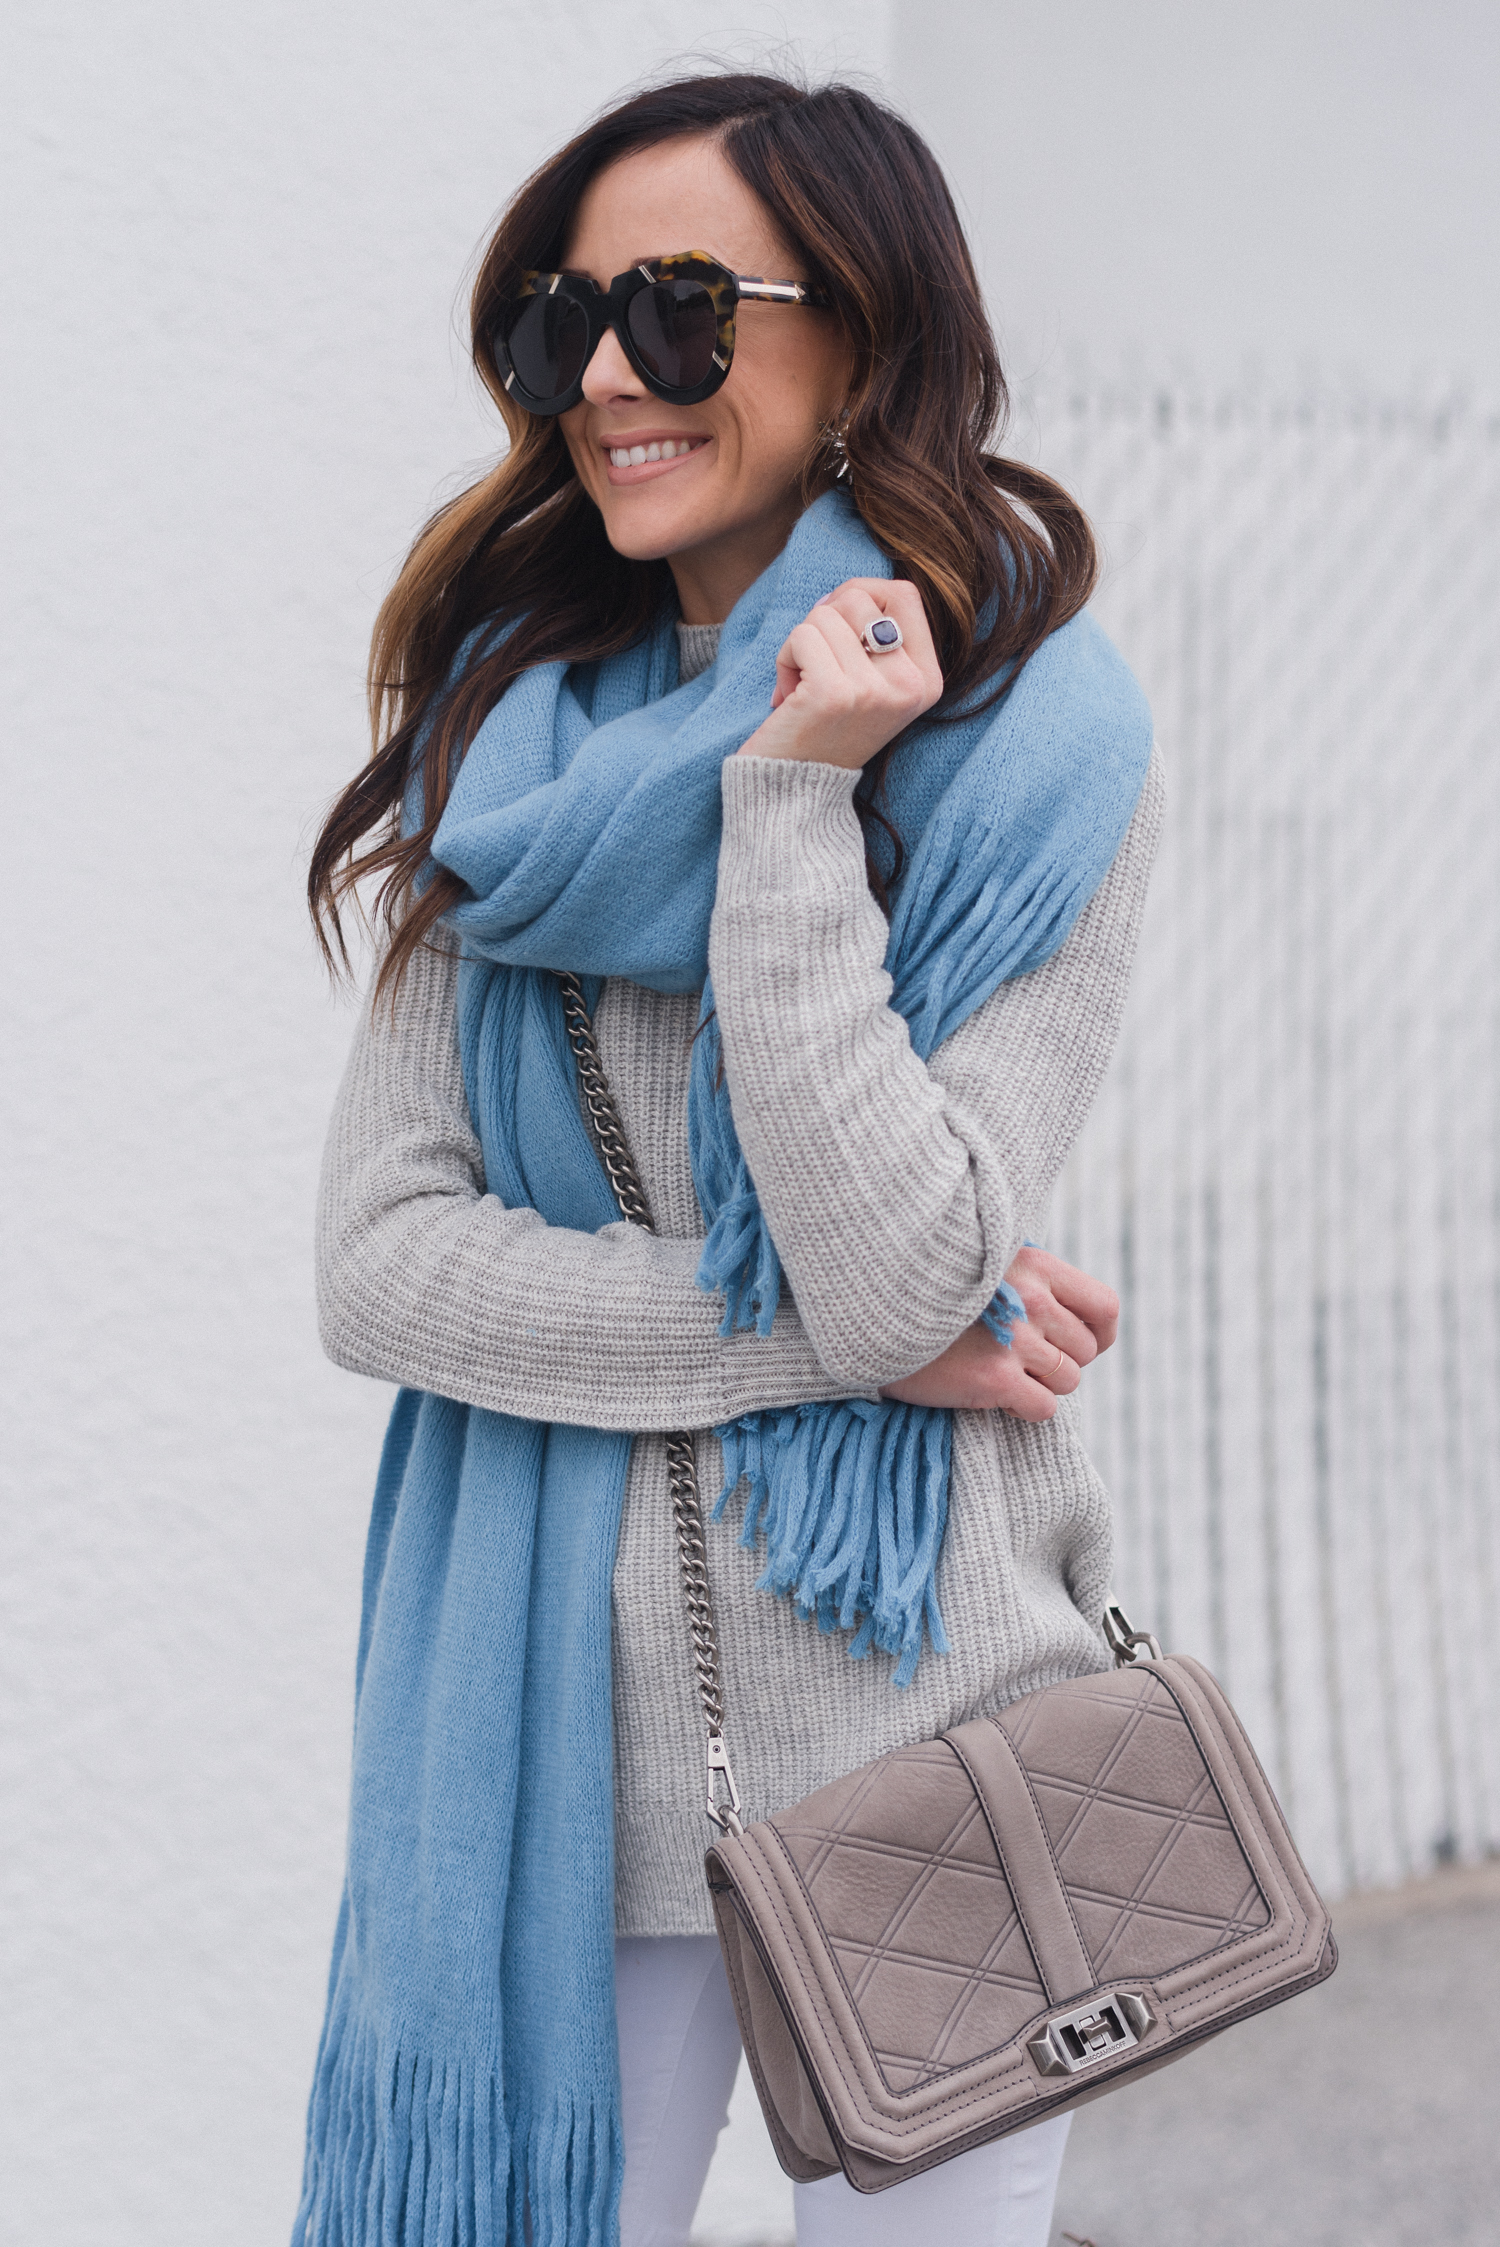 winter outfit inspiration, free people, free people scarf, alyson haley